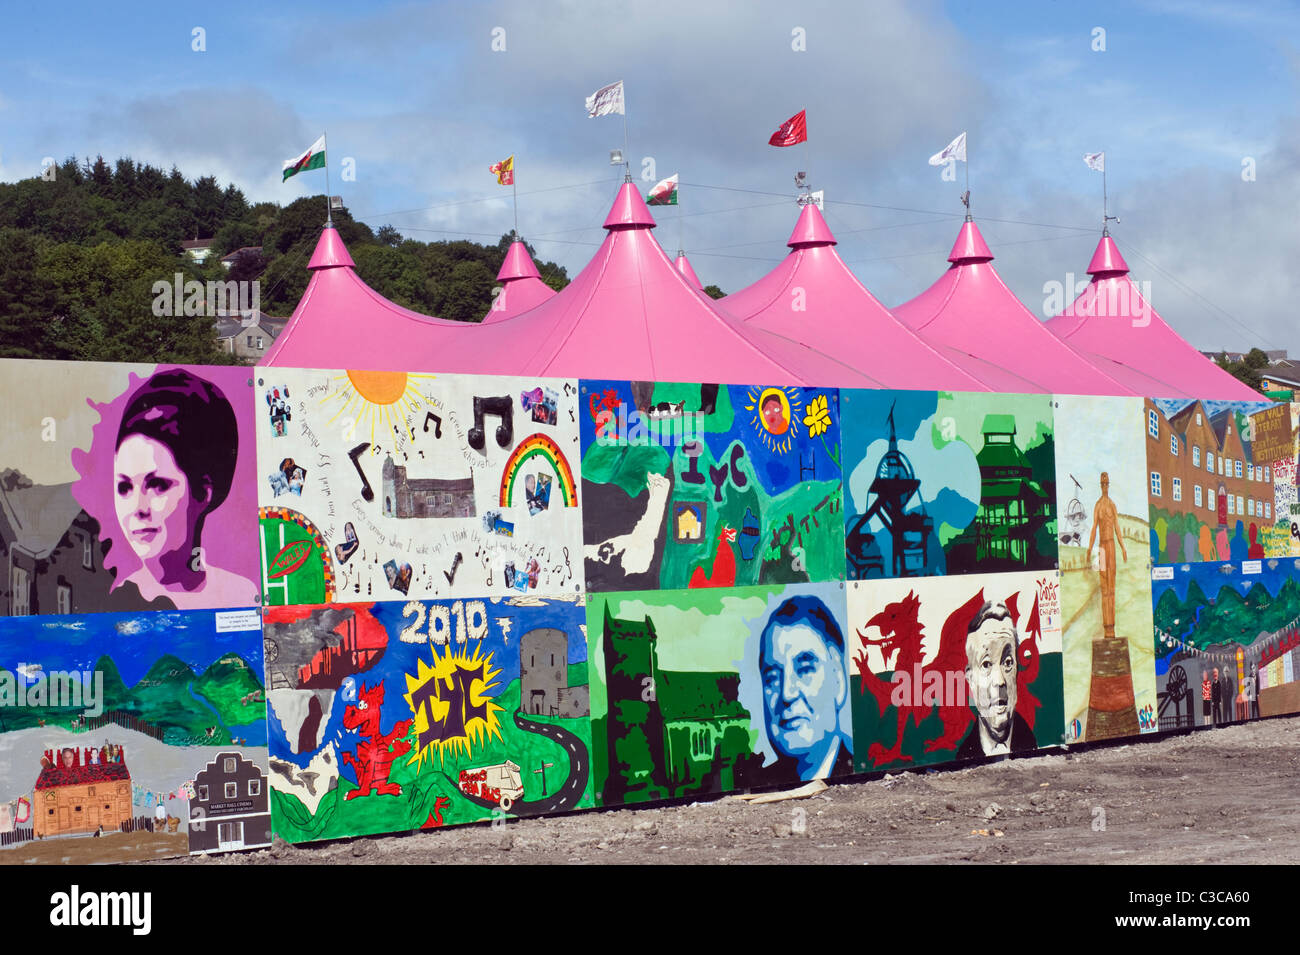 View over local mural and the pink pavilion on the site of the National Eisteddfod 2010 Ebbw Vale Blaenau Gwent - Stock Image